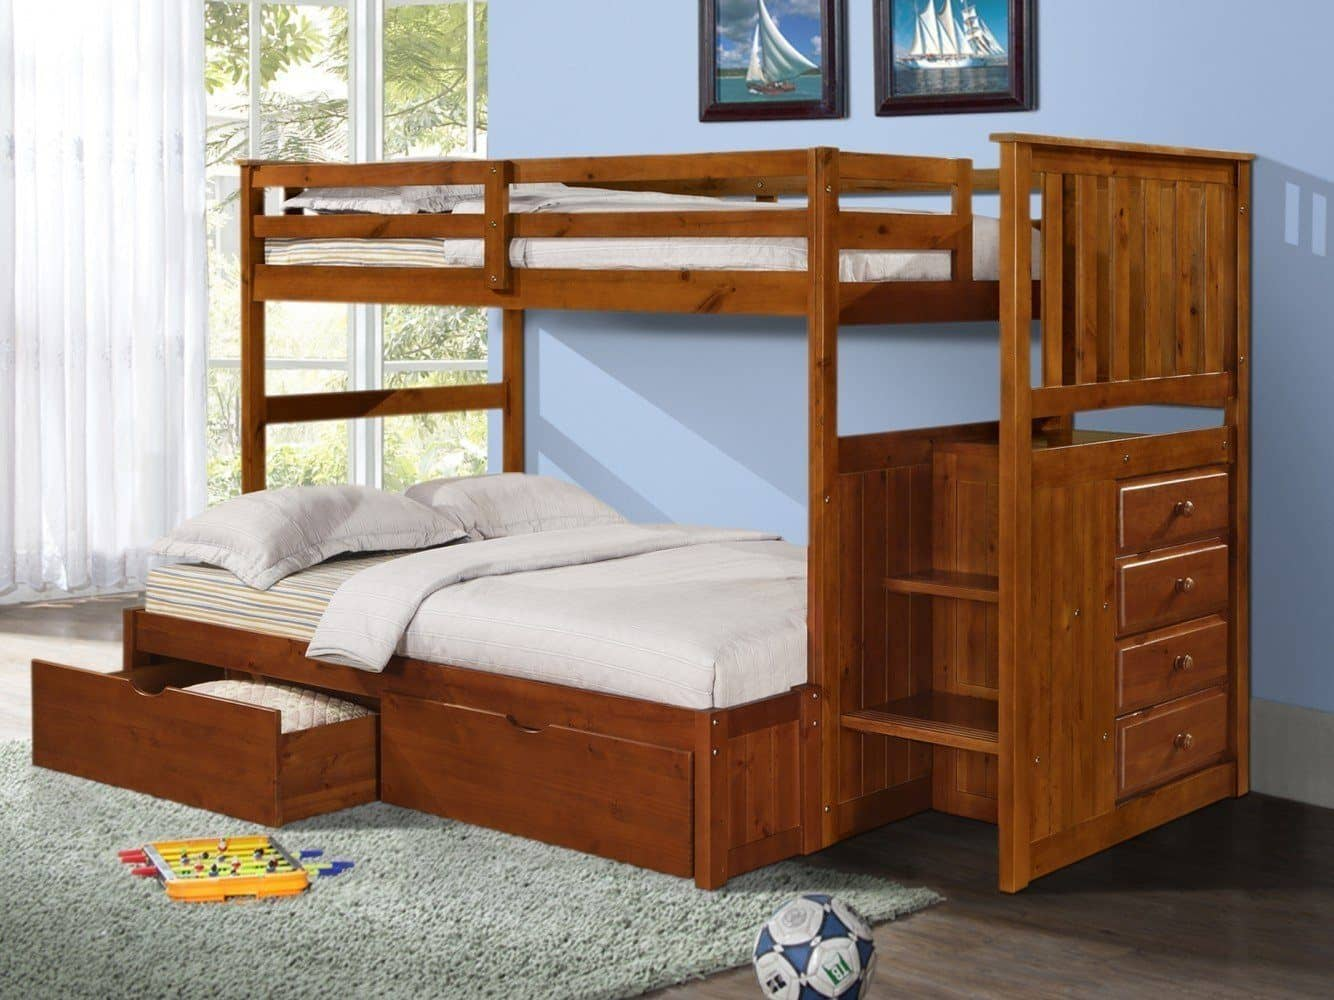 Picture of: Alexander Kids Beds With Storage Custom Kids Furniture